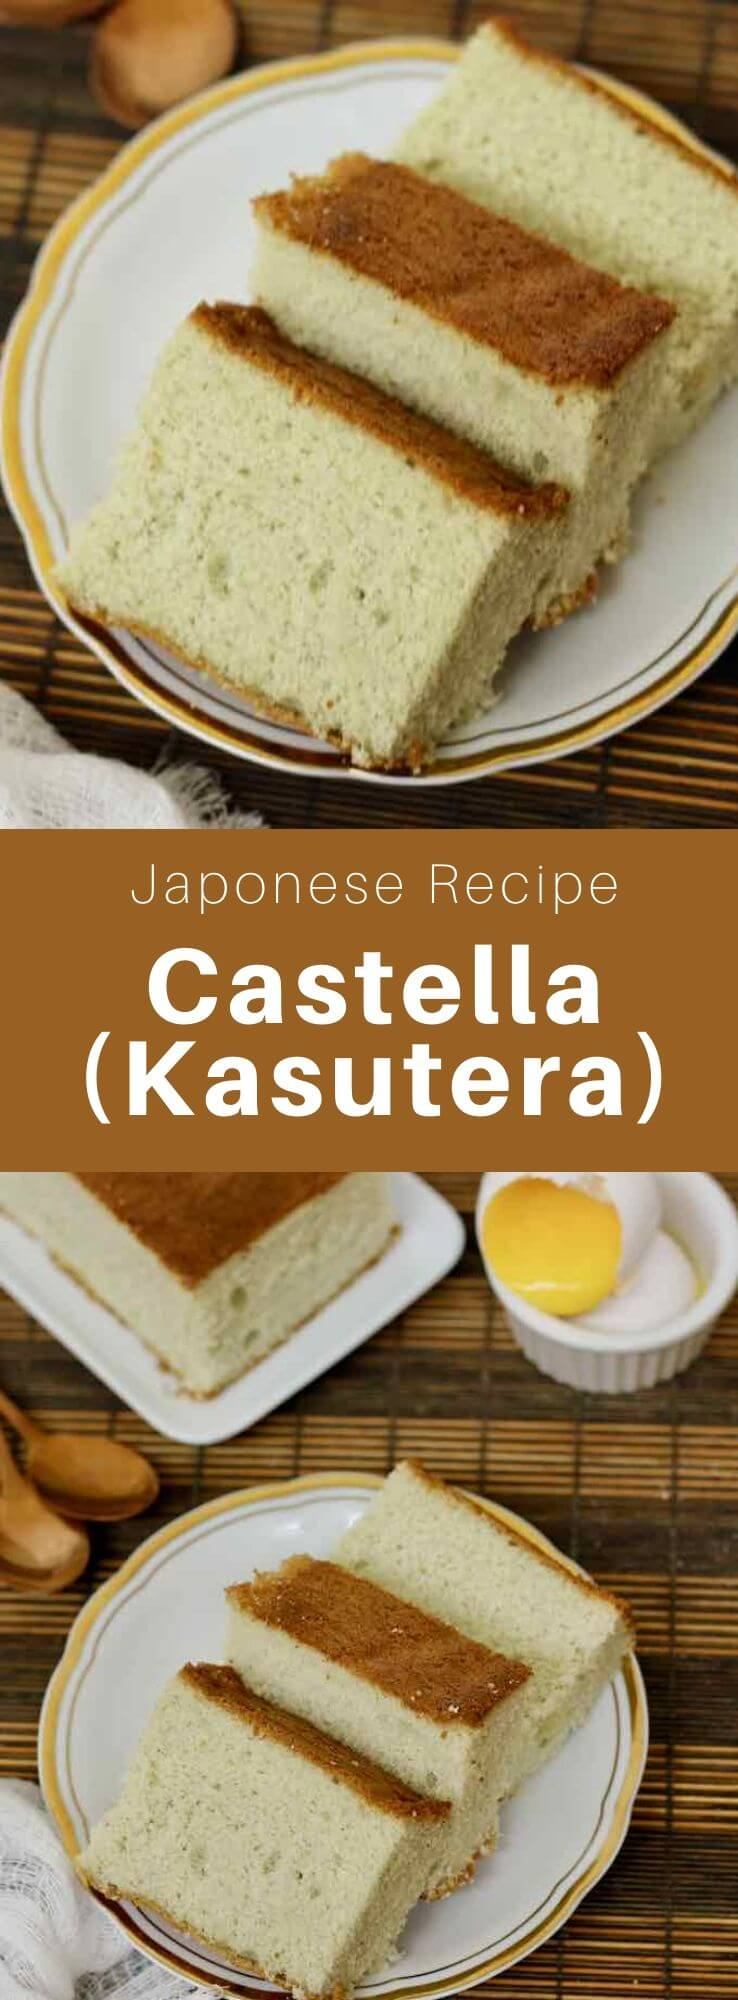 Castella or kasutera (カステラ) is a Japanese sponge cake made from sugar, flour, eggs and mizuame (malt syrup) imported by Portuguese missionaries in Nagasaki in the 16th century. #Japan #Japanese #JapaneseFood #JapaneseCuisine #JapaneseRecipe #AsianCuisine #AsianFood #AsianCuisine #WorldCuisine #196flavors